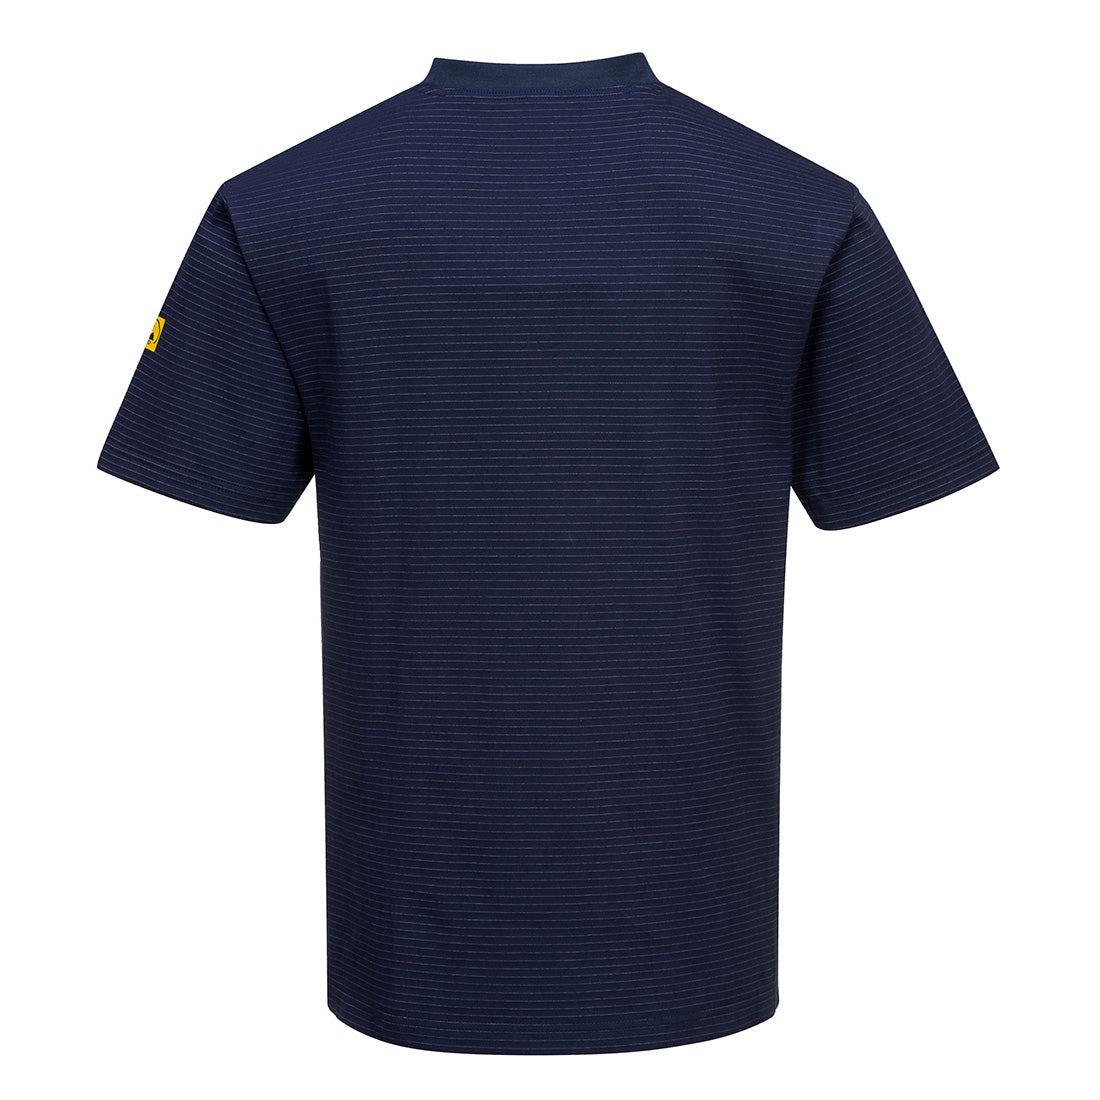 Portwest Anti-Static ESD T-Shirt